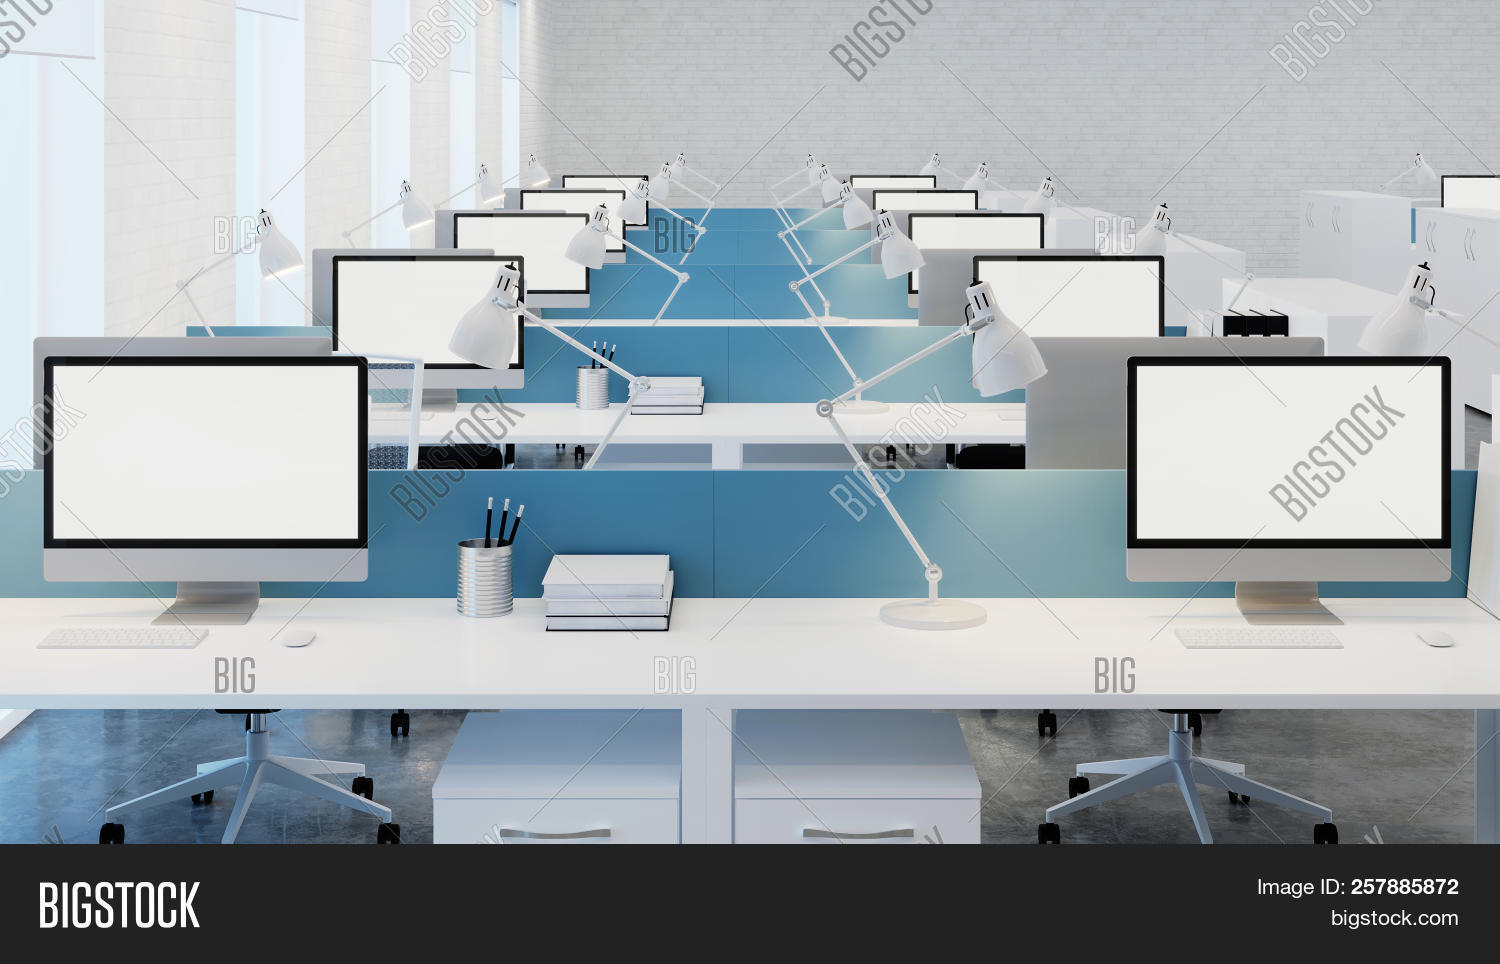 Office Space. Open Image & Photo (Free Trial) | Bigstock on creative office design, 3d model office design, celebrity office design, best office design, studio office design, free office desktop pics, free bathroom design, free an office design layout, white office design, school office design, free home design, modern office design, free online office design, cool office design, traditional office design, architecture office design, green office design, free graphic design, nature office design, apple office design,